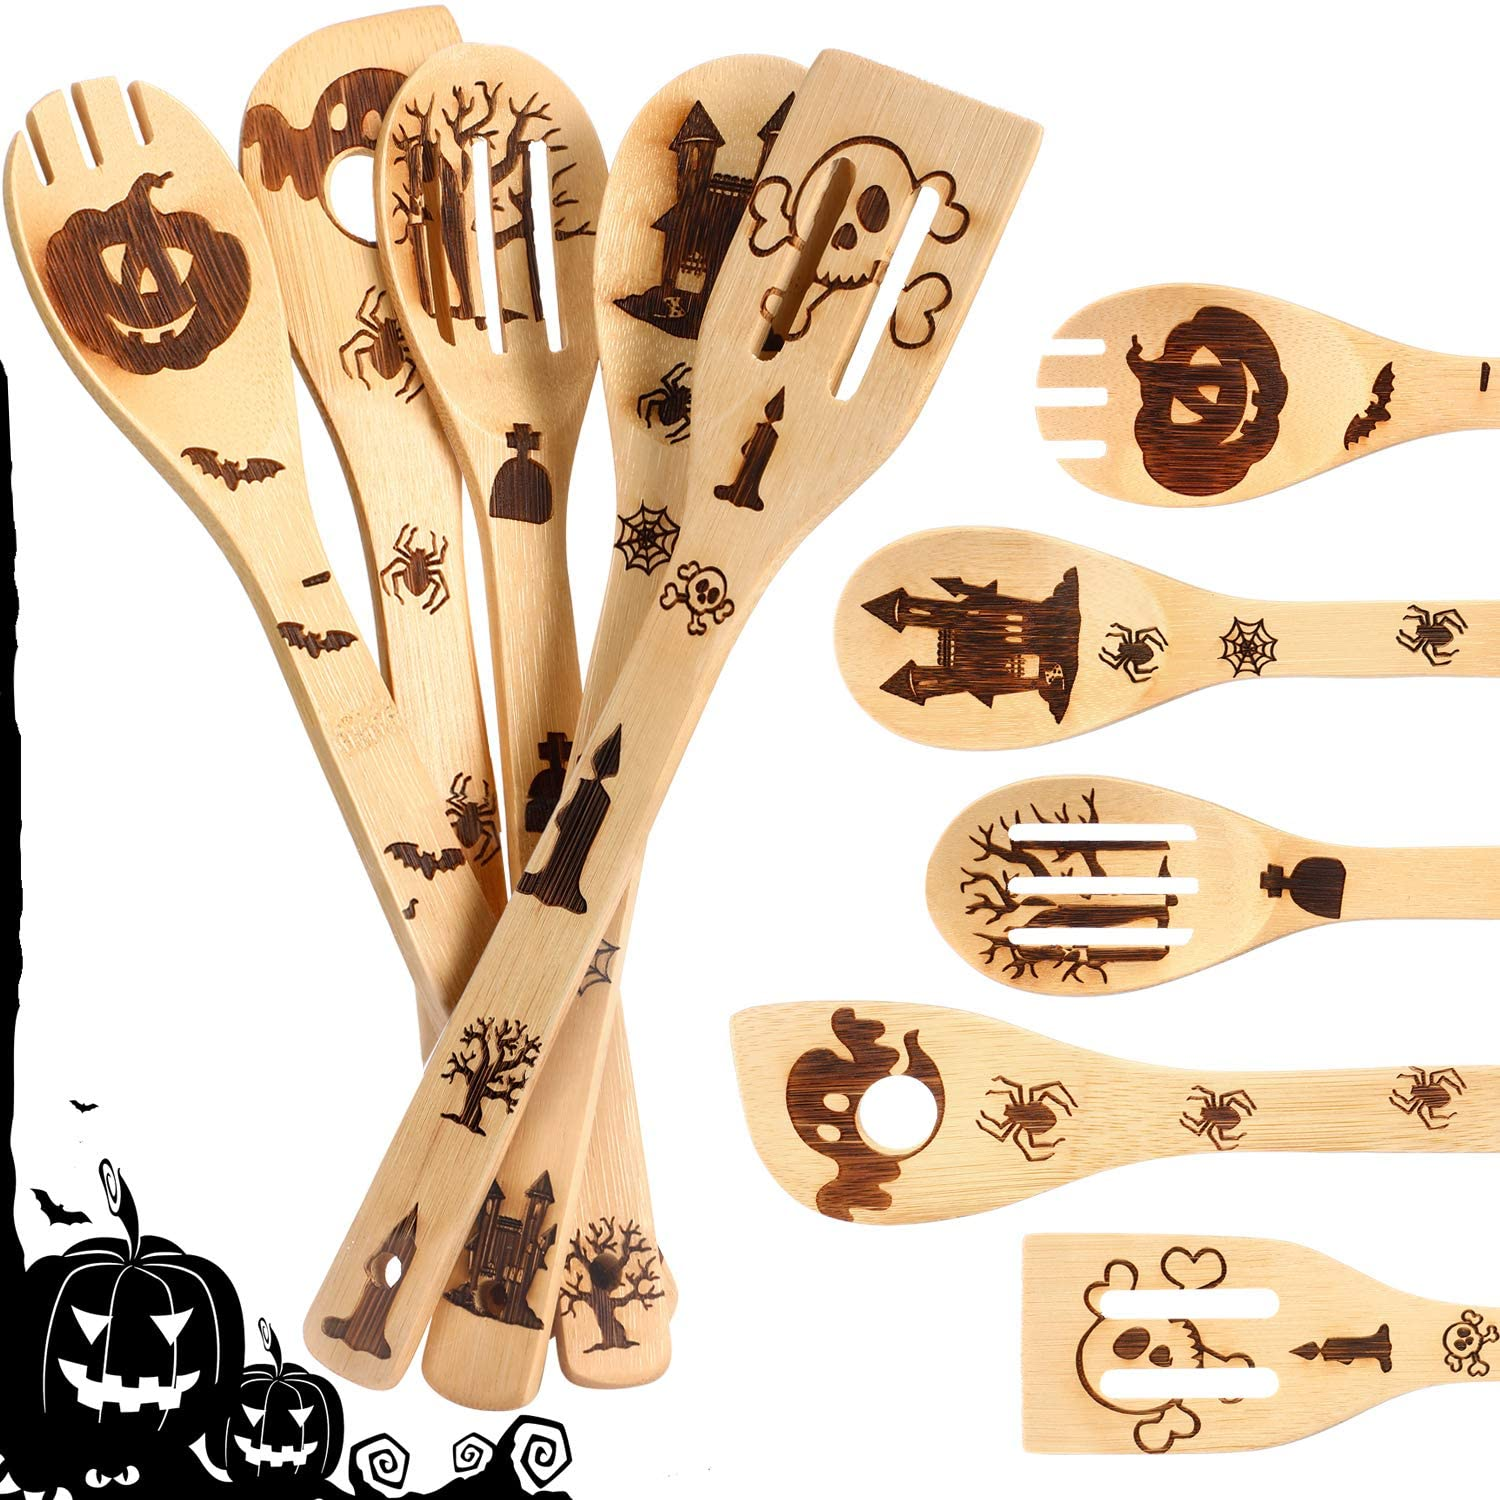 5 Pieces Halloween Burned Wooden Spoons Set Bamboo Cooking Spoons Utensils Wood Slotted Spoon Spatula for Halloween House Warming Wedding Home Kitchen Tableware